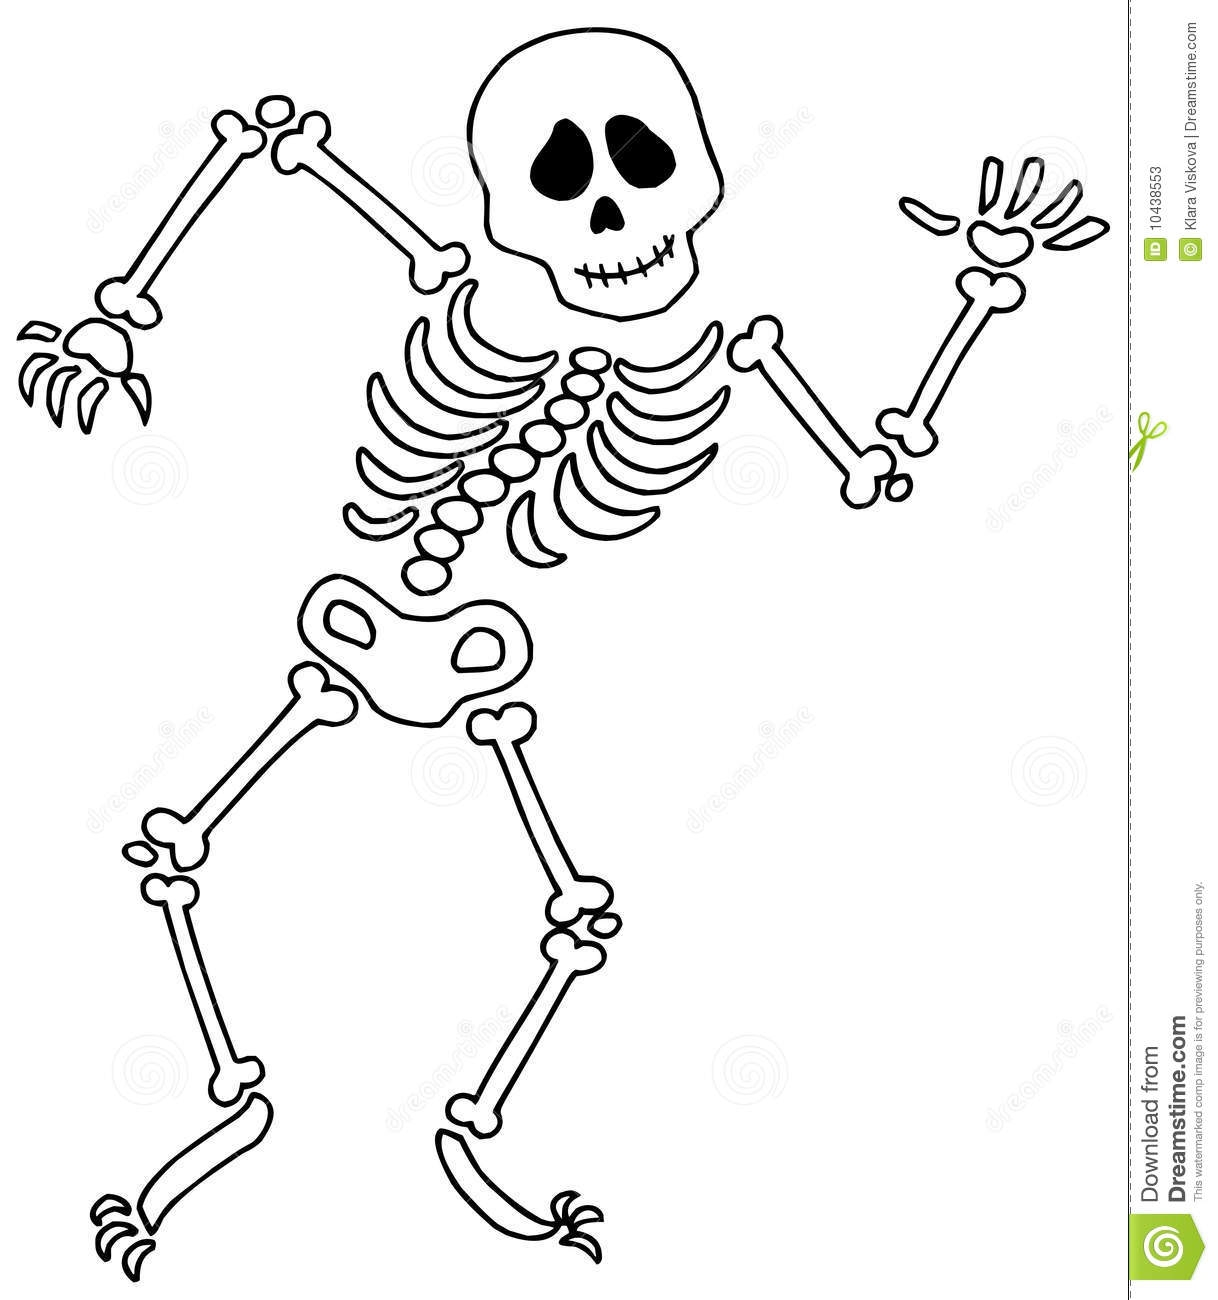 Cute Halloween Skeleton Clipa - Skeleton Clipart